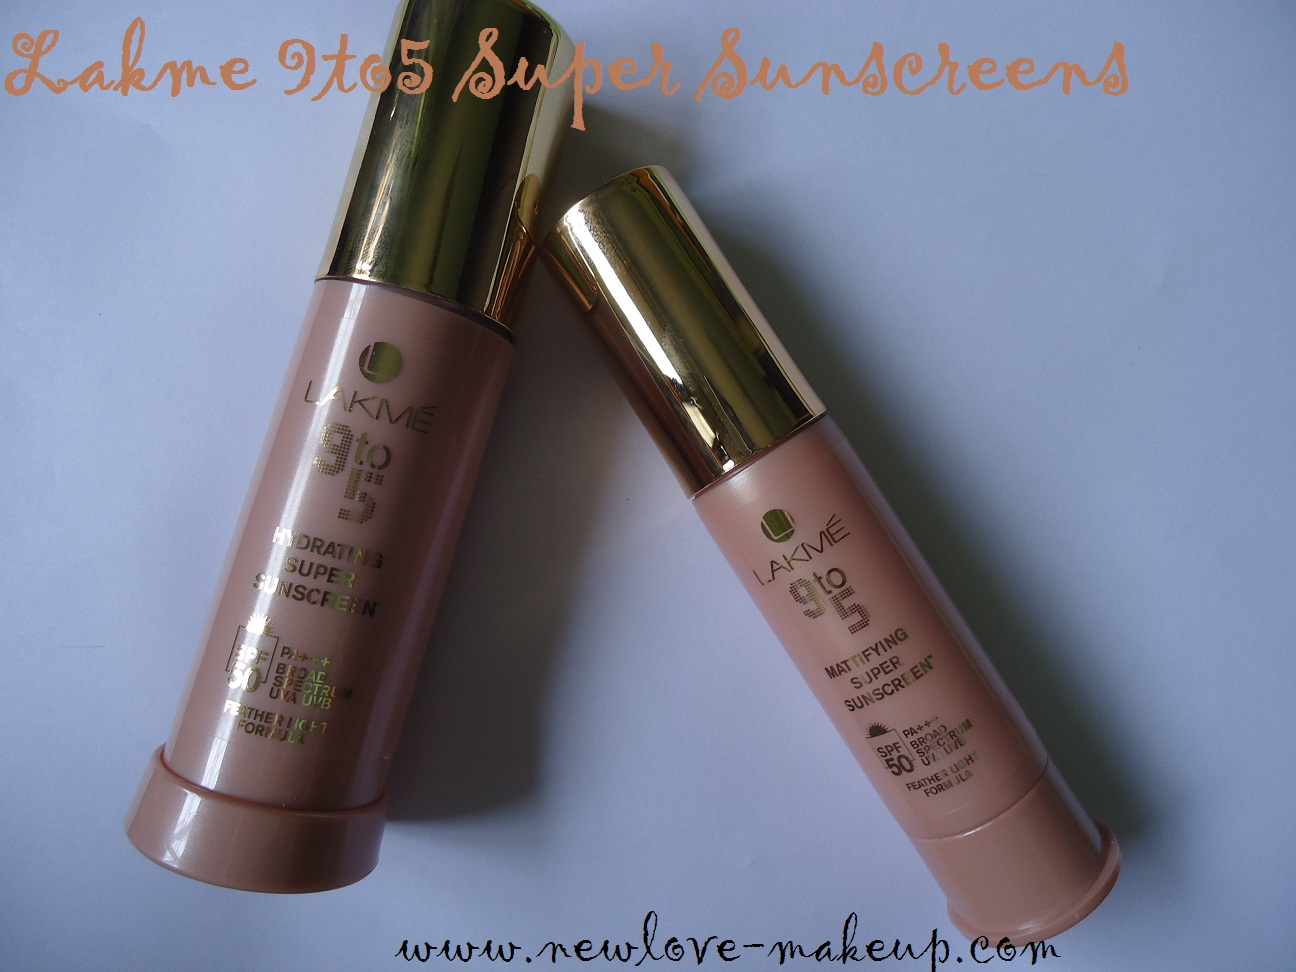 Lakme 9 to 5 Super Sunscreens SPF50-Hydrating and Mattifying Review